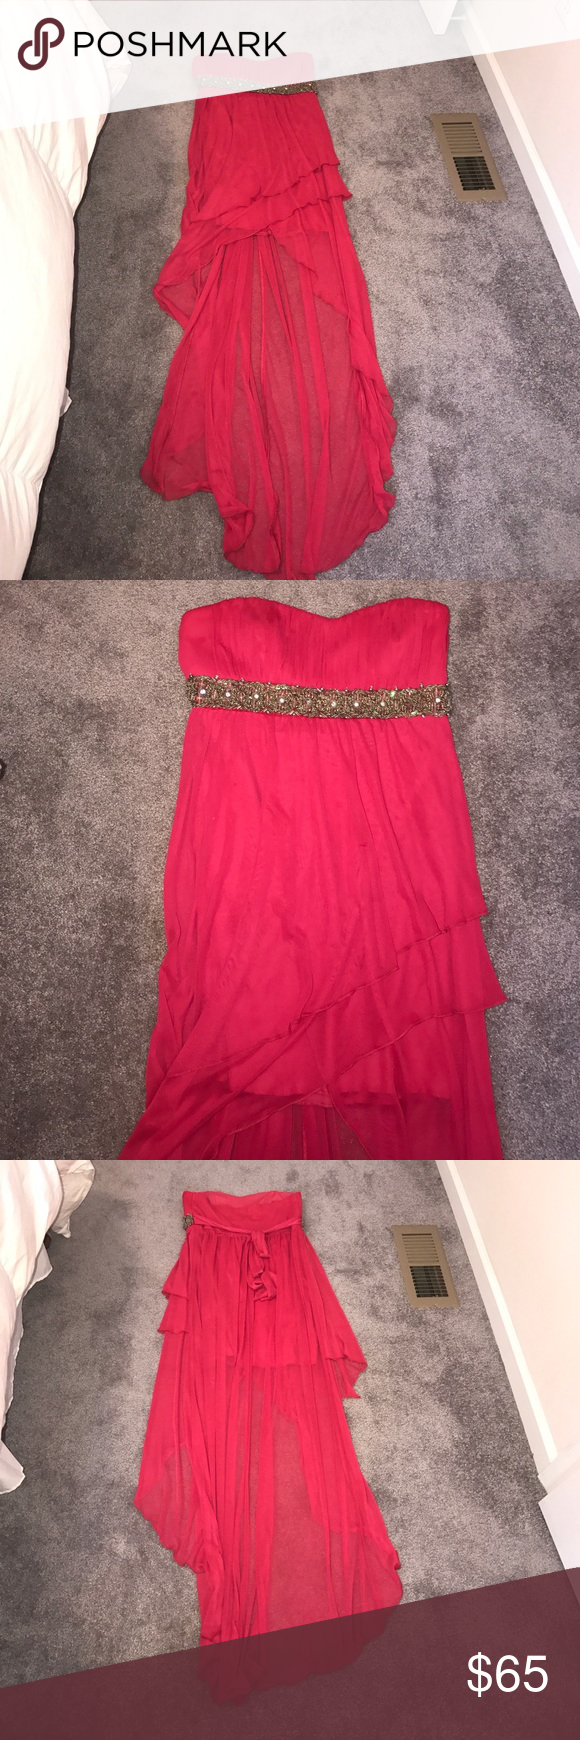 Prom or dinner dress cruise wear nice dresses and prom